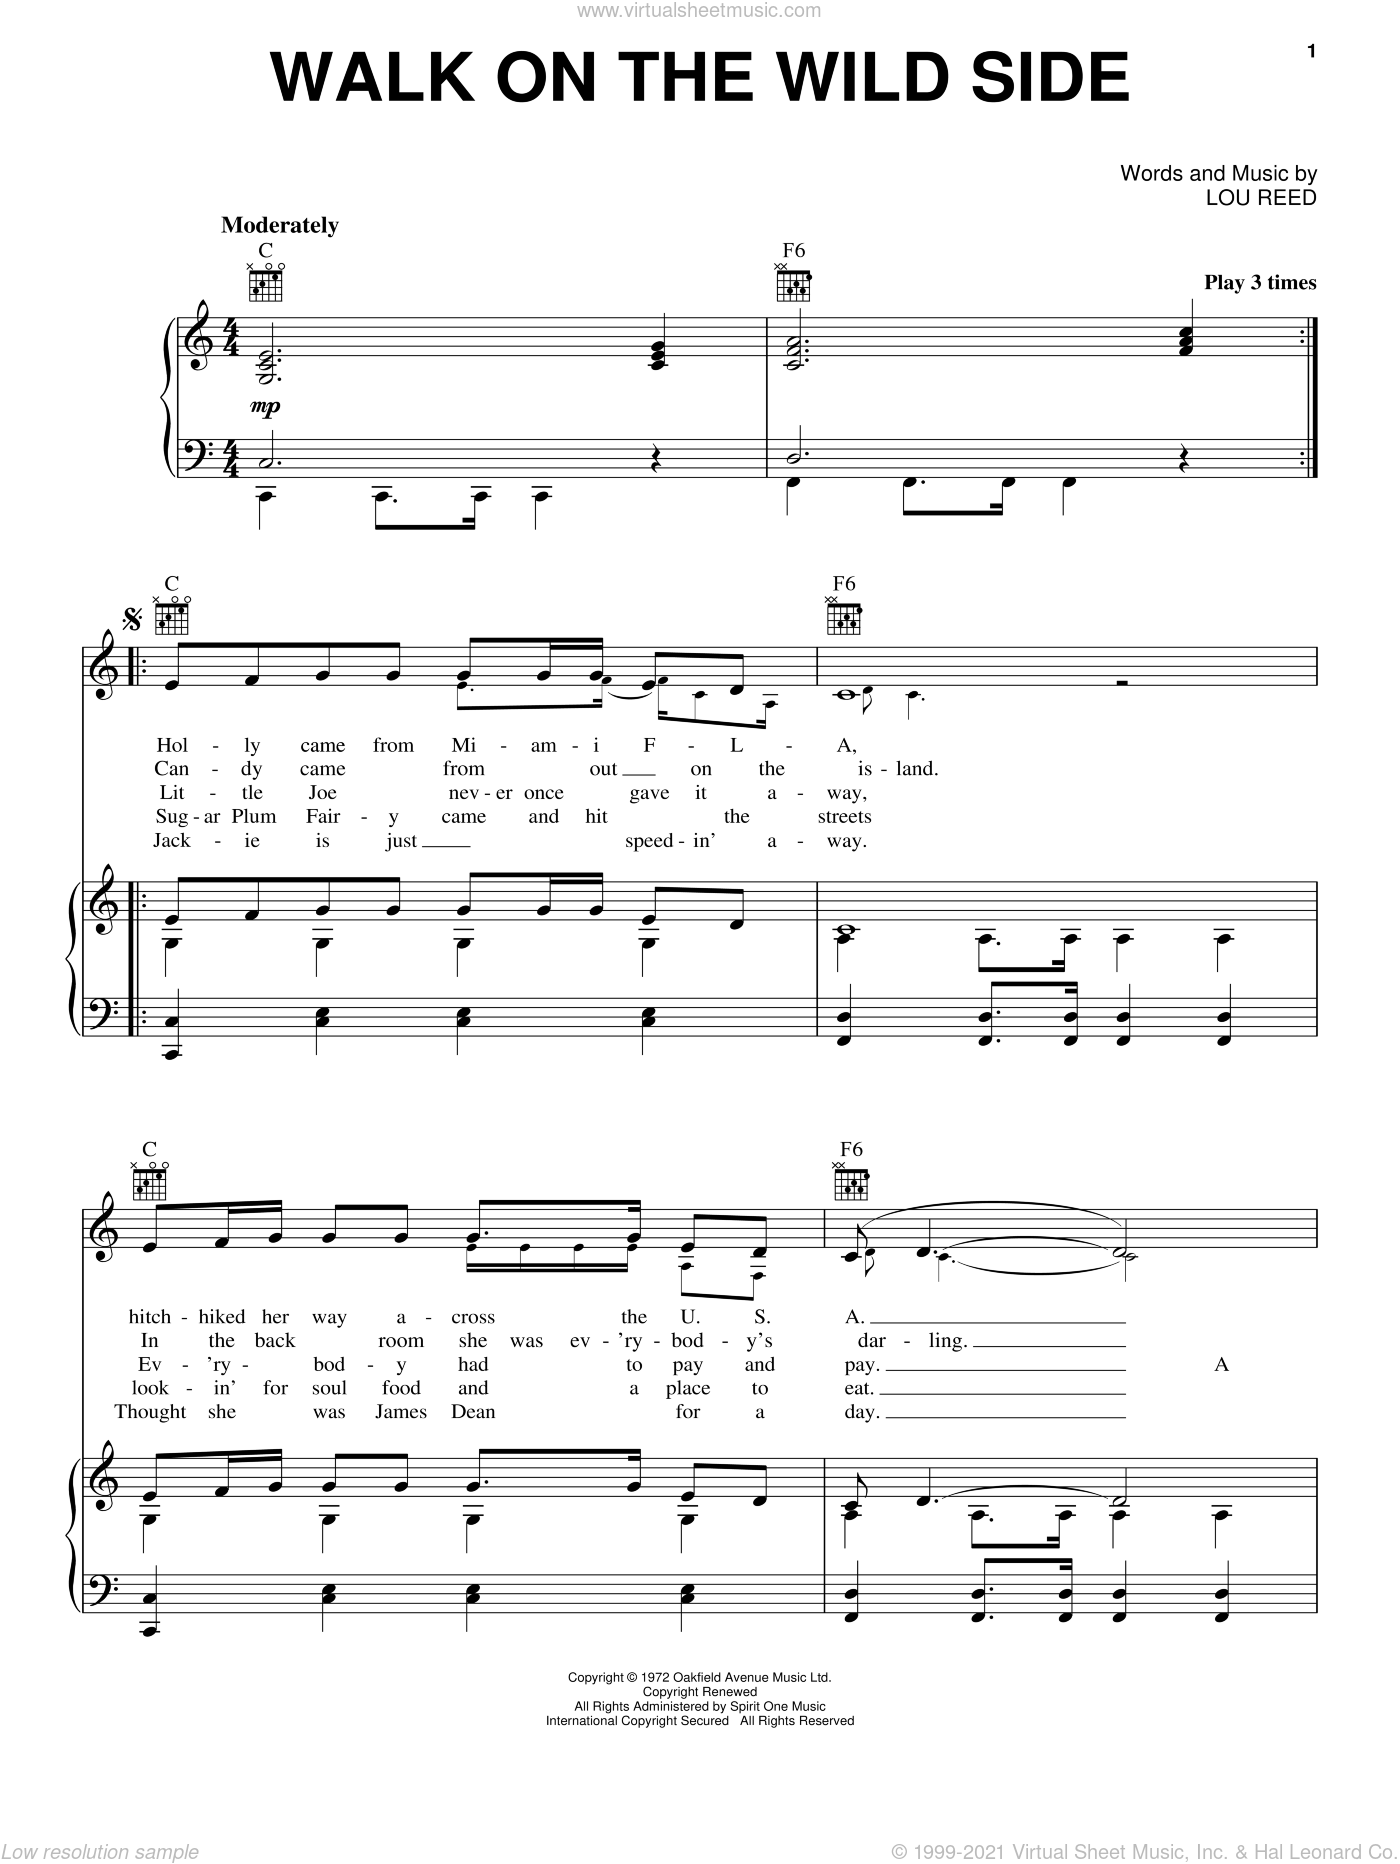 Walk On The Wild Side sheet music for voice, piano or guitar by Lou Reed, intermediate skill level